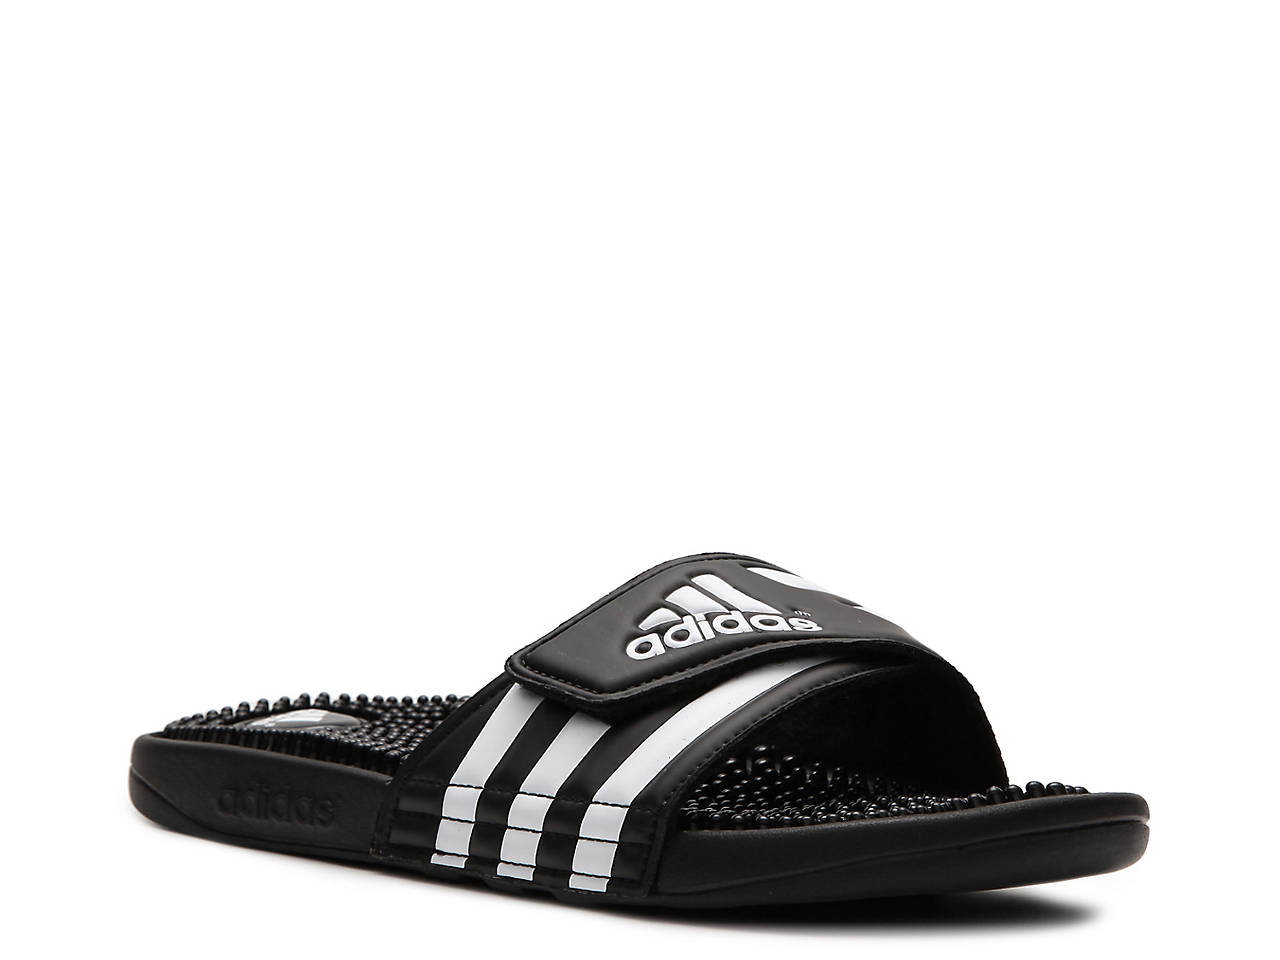 71291c92e2 adidas Adissage Slide Sandal - Men s Men s Shoes